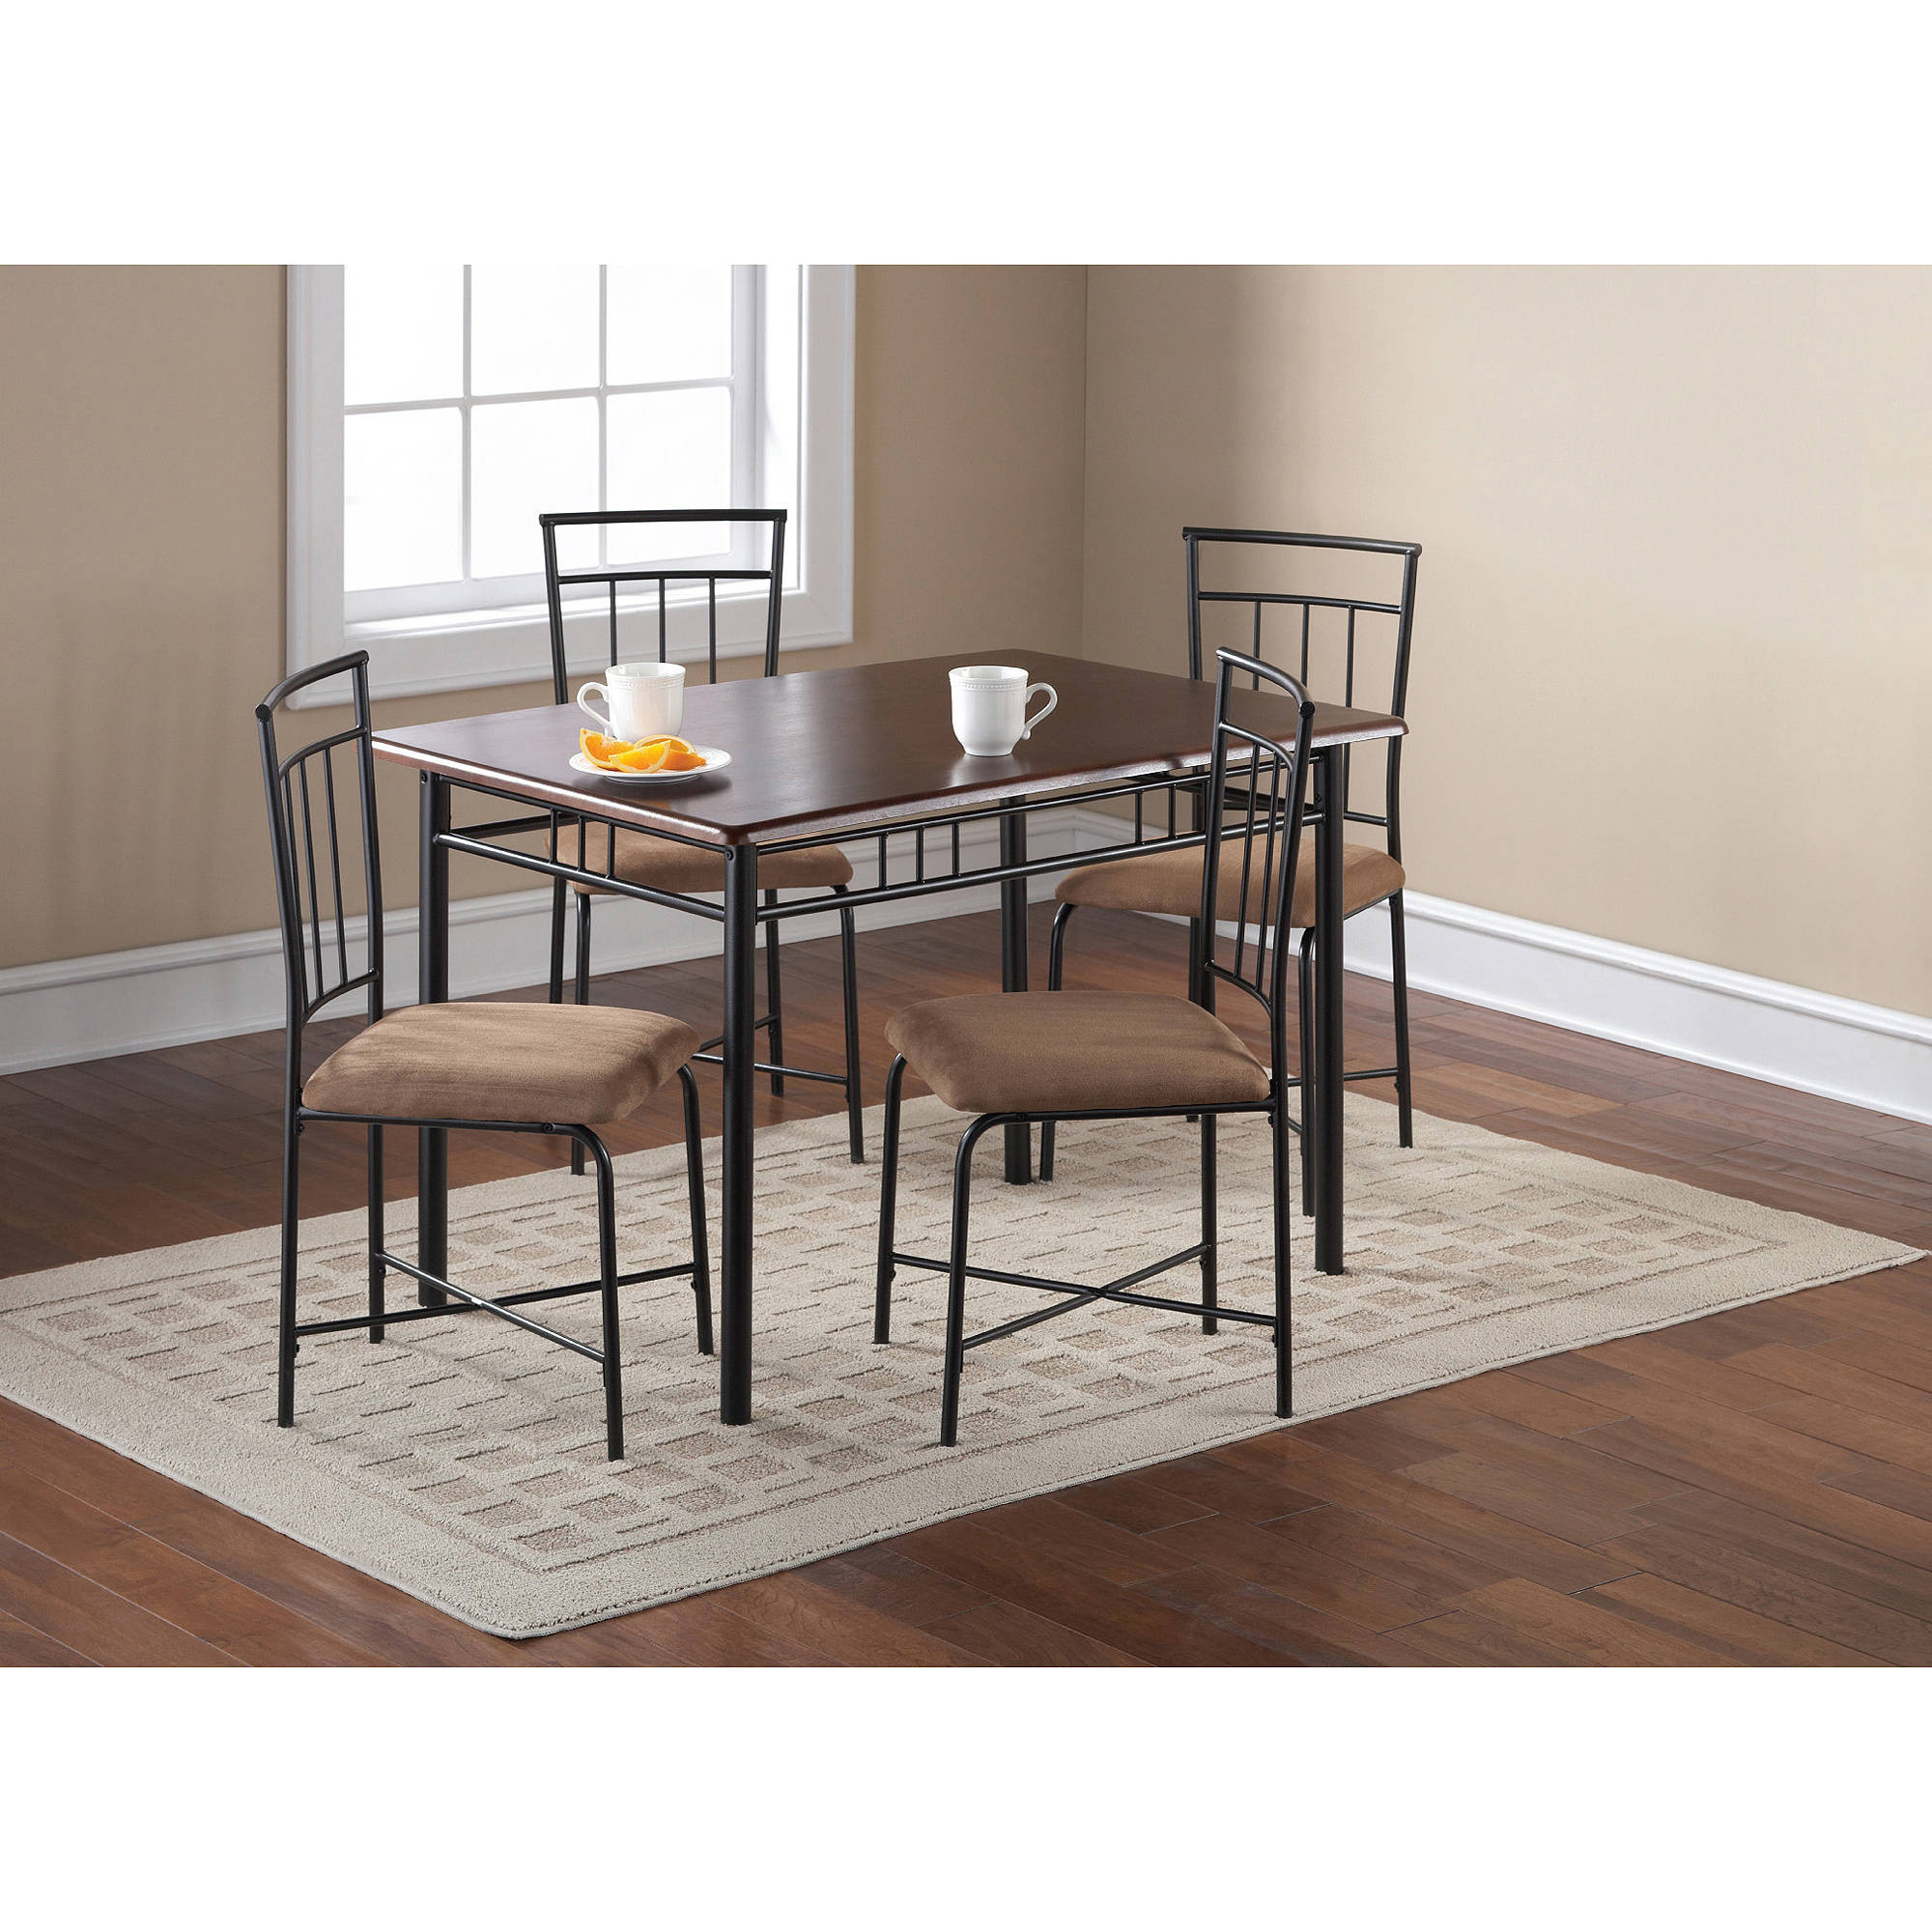 Best ideas about Walmart Dining Table Set . Save or Pin Better Homes and Gardens Cambridge Place Dining Table Now.